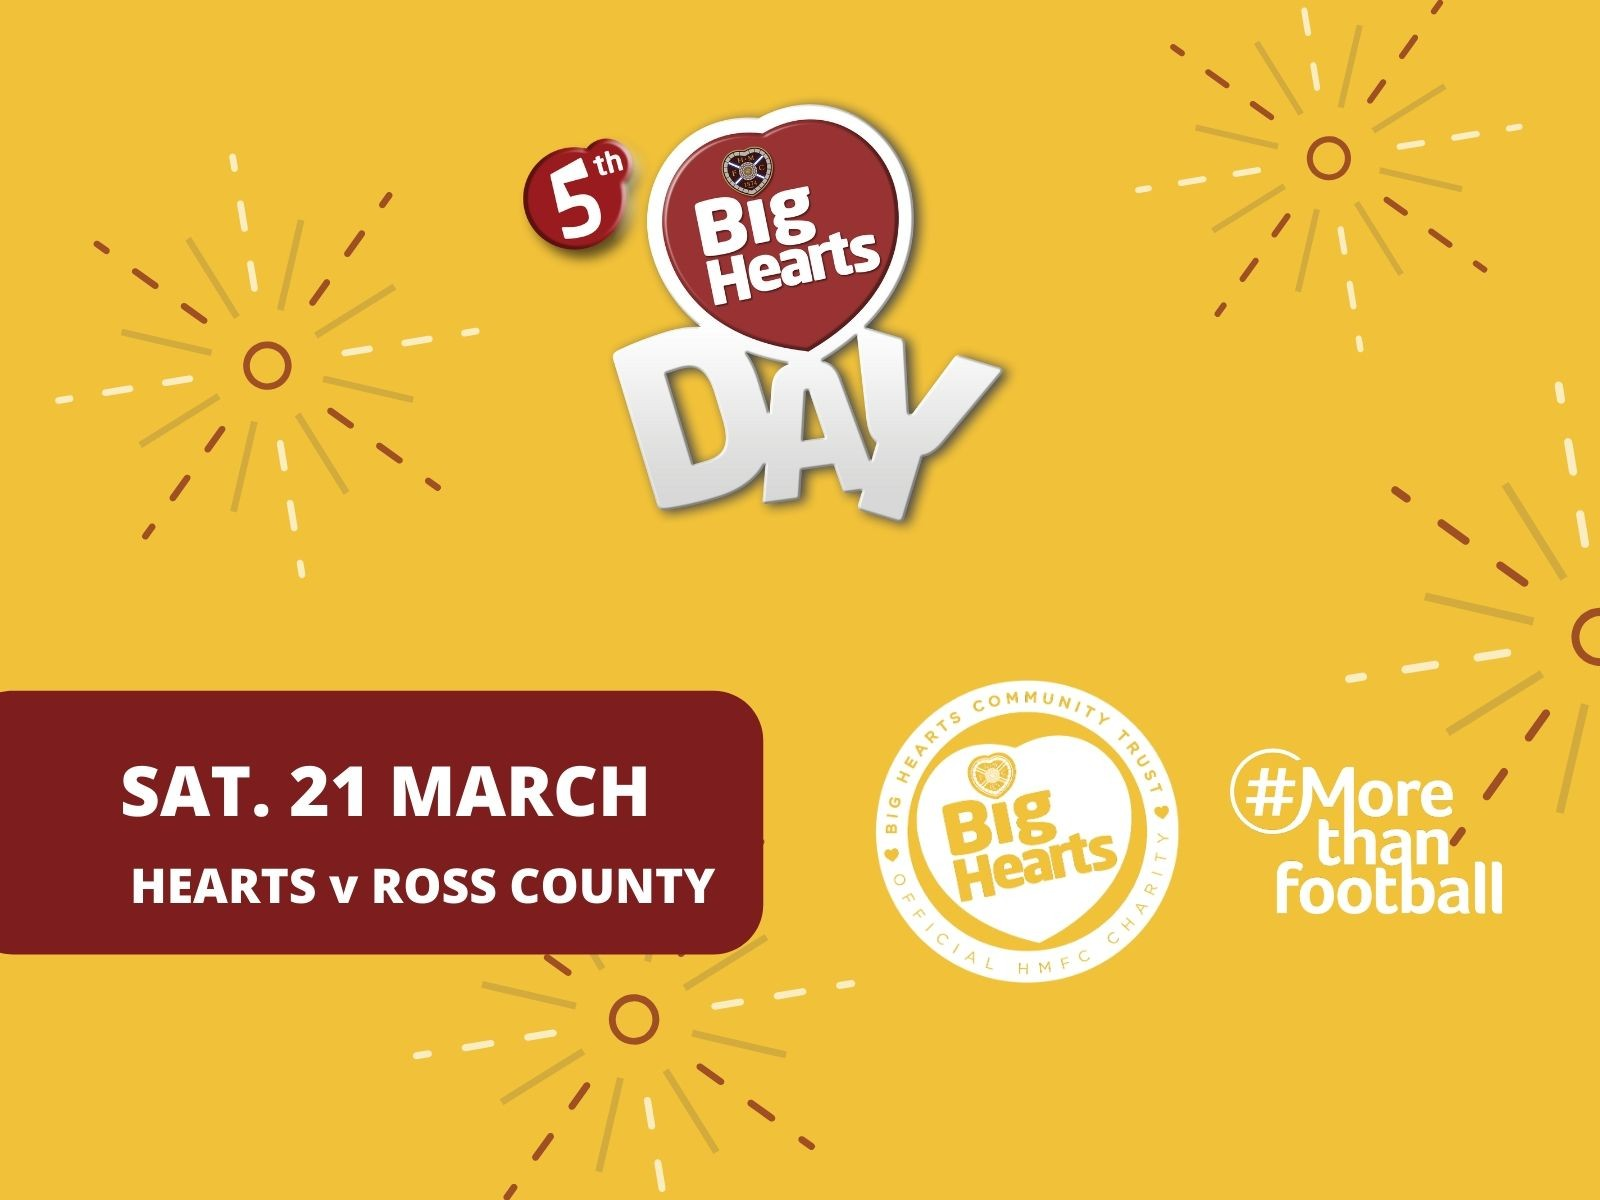 » 5th Big Hearts Day set for game Hearts v Ross County on 21 March